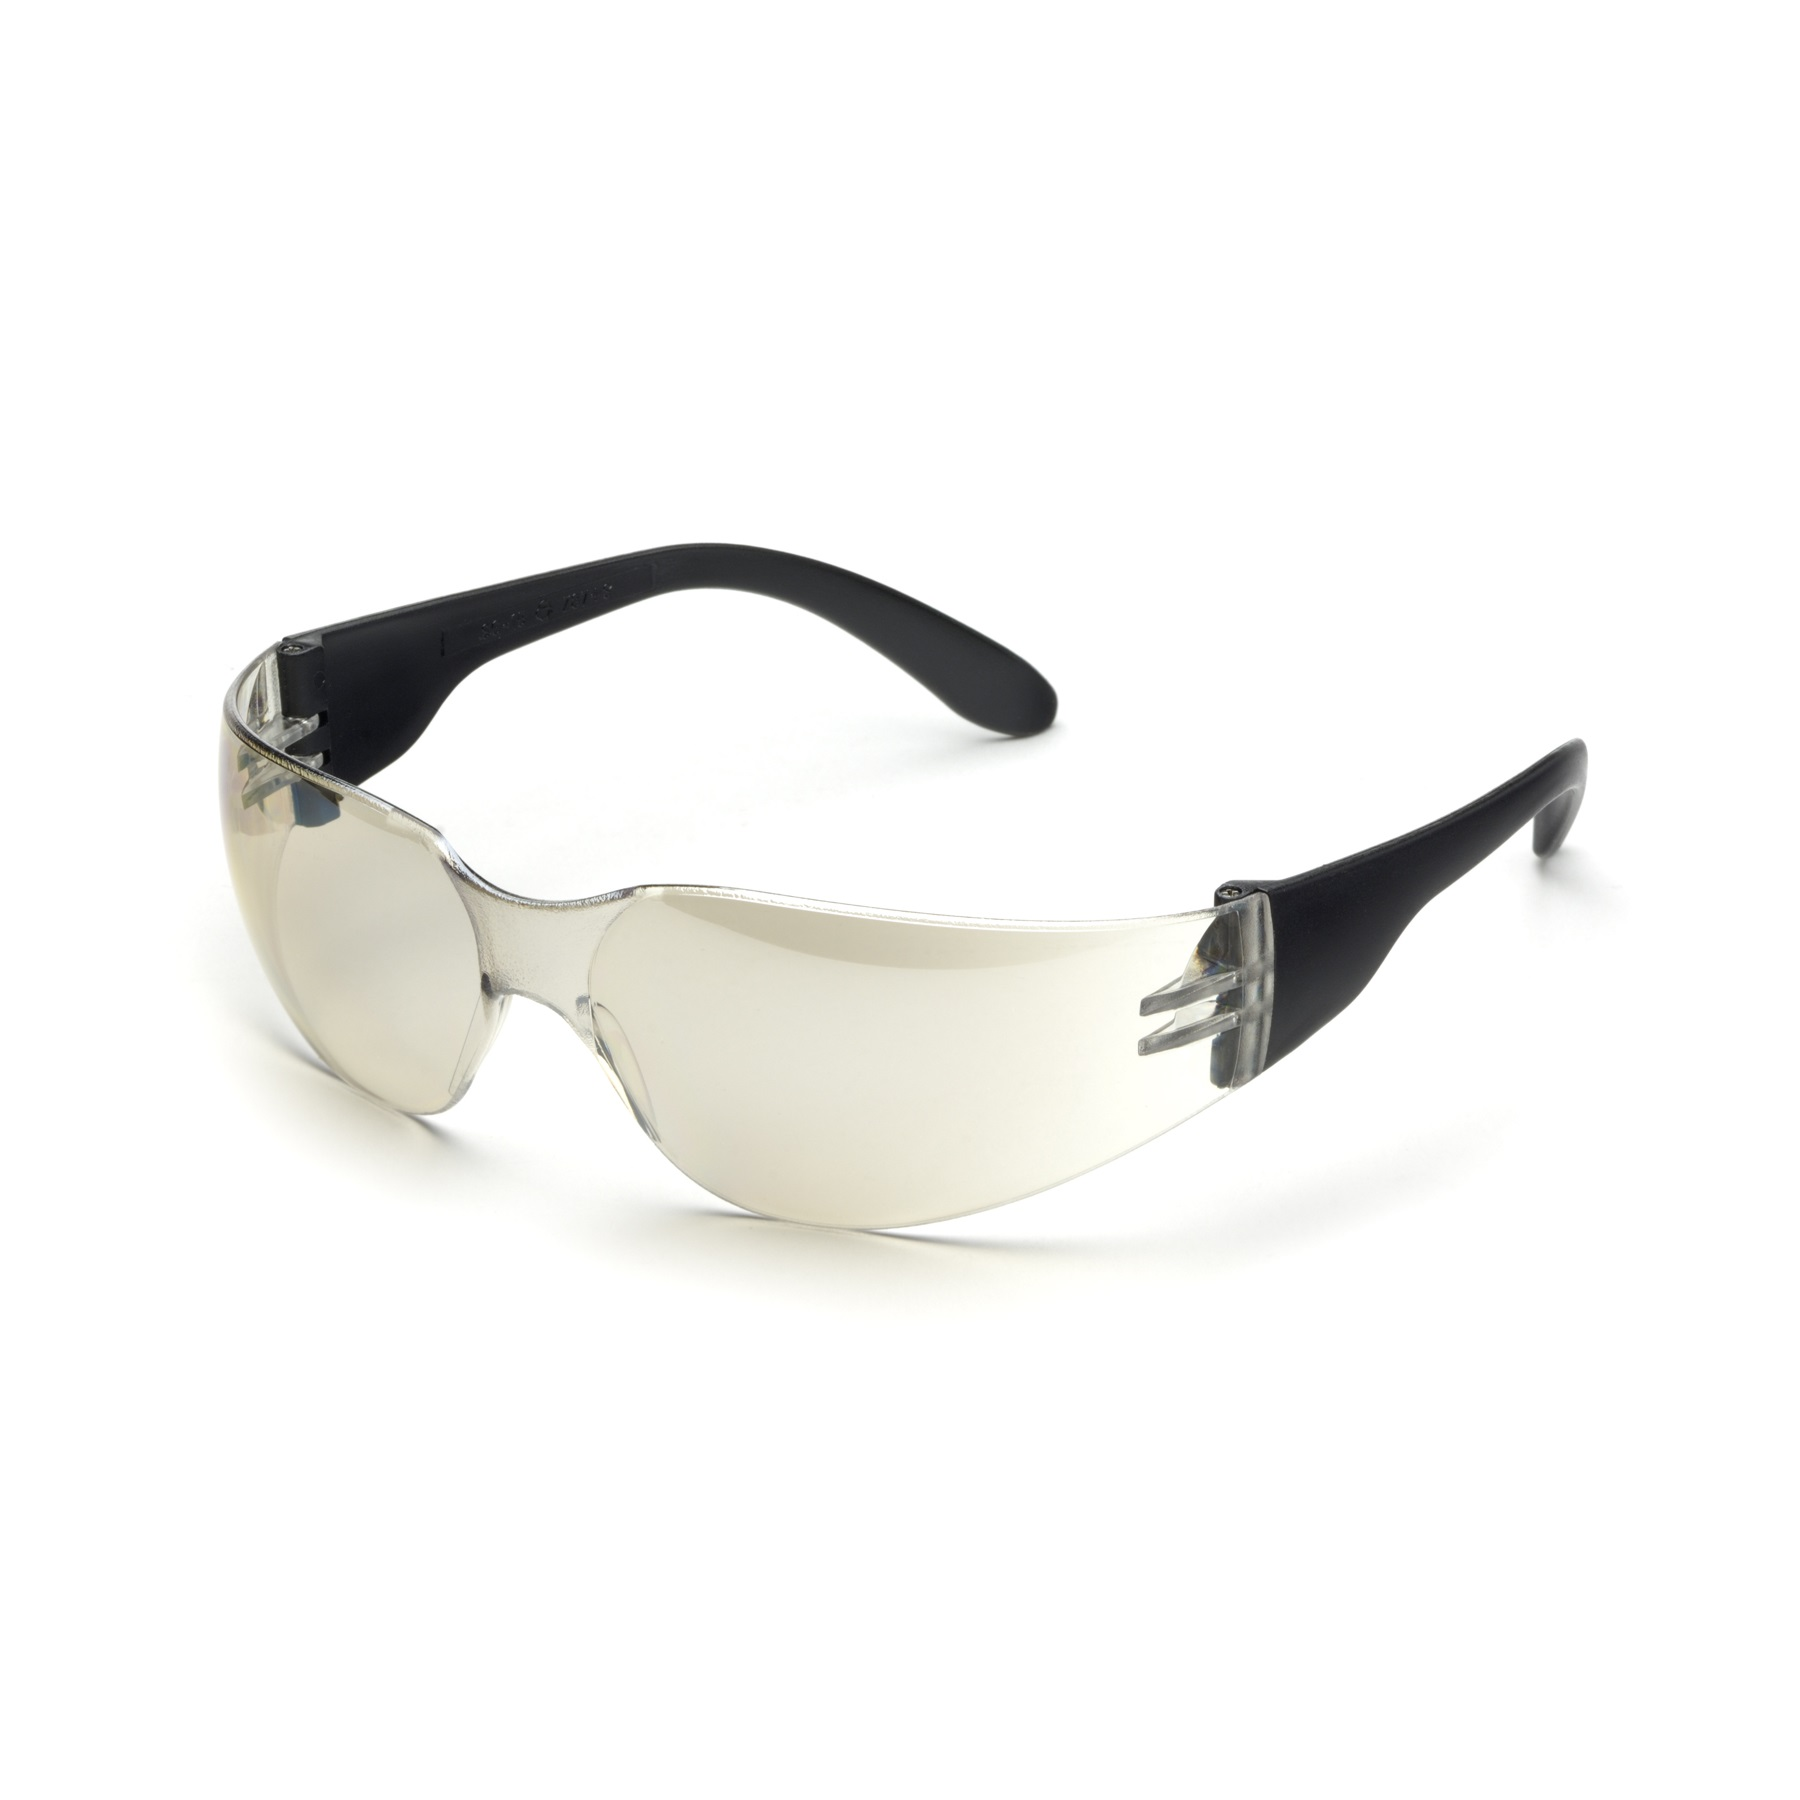 Elvex TTS Safety Glasses SG-15